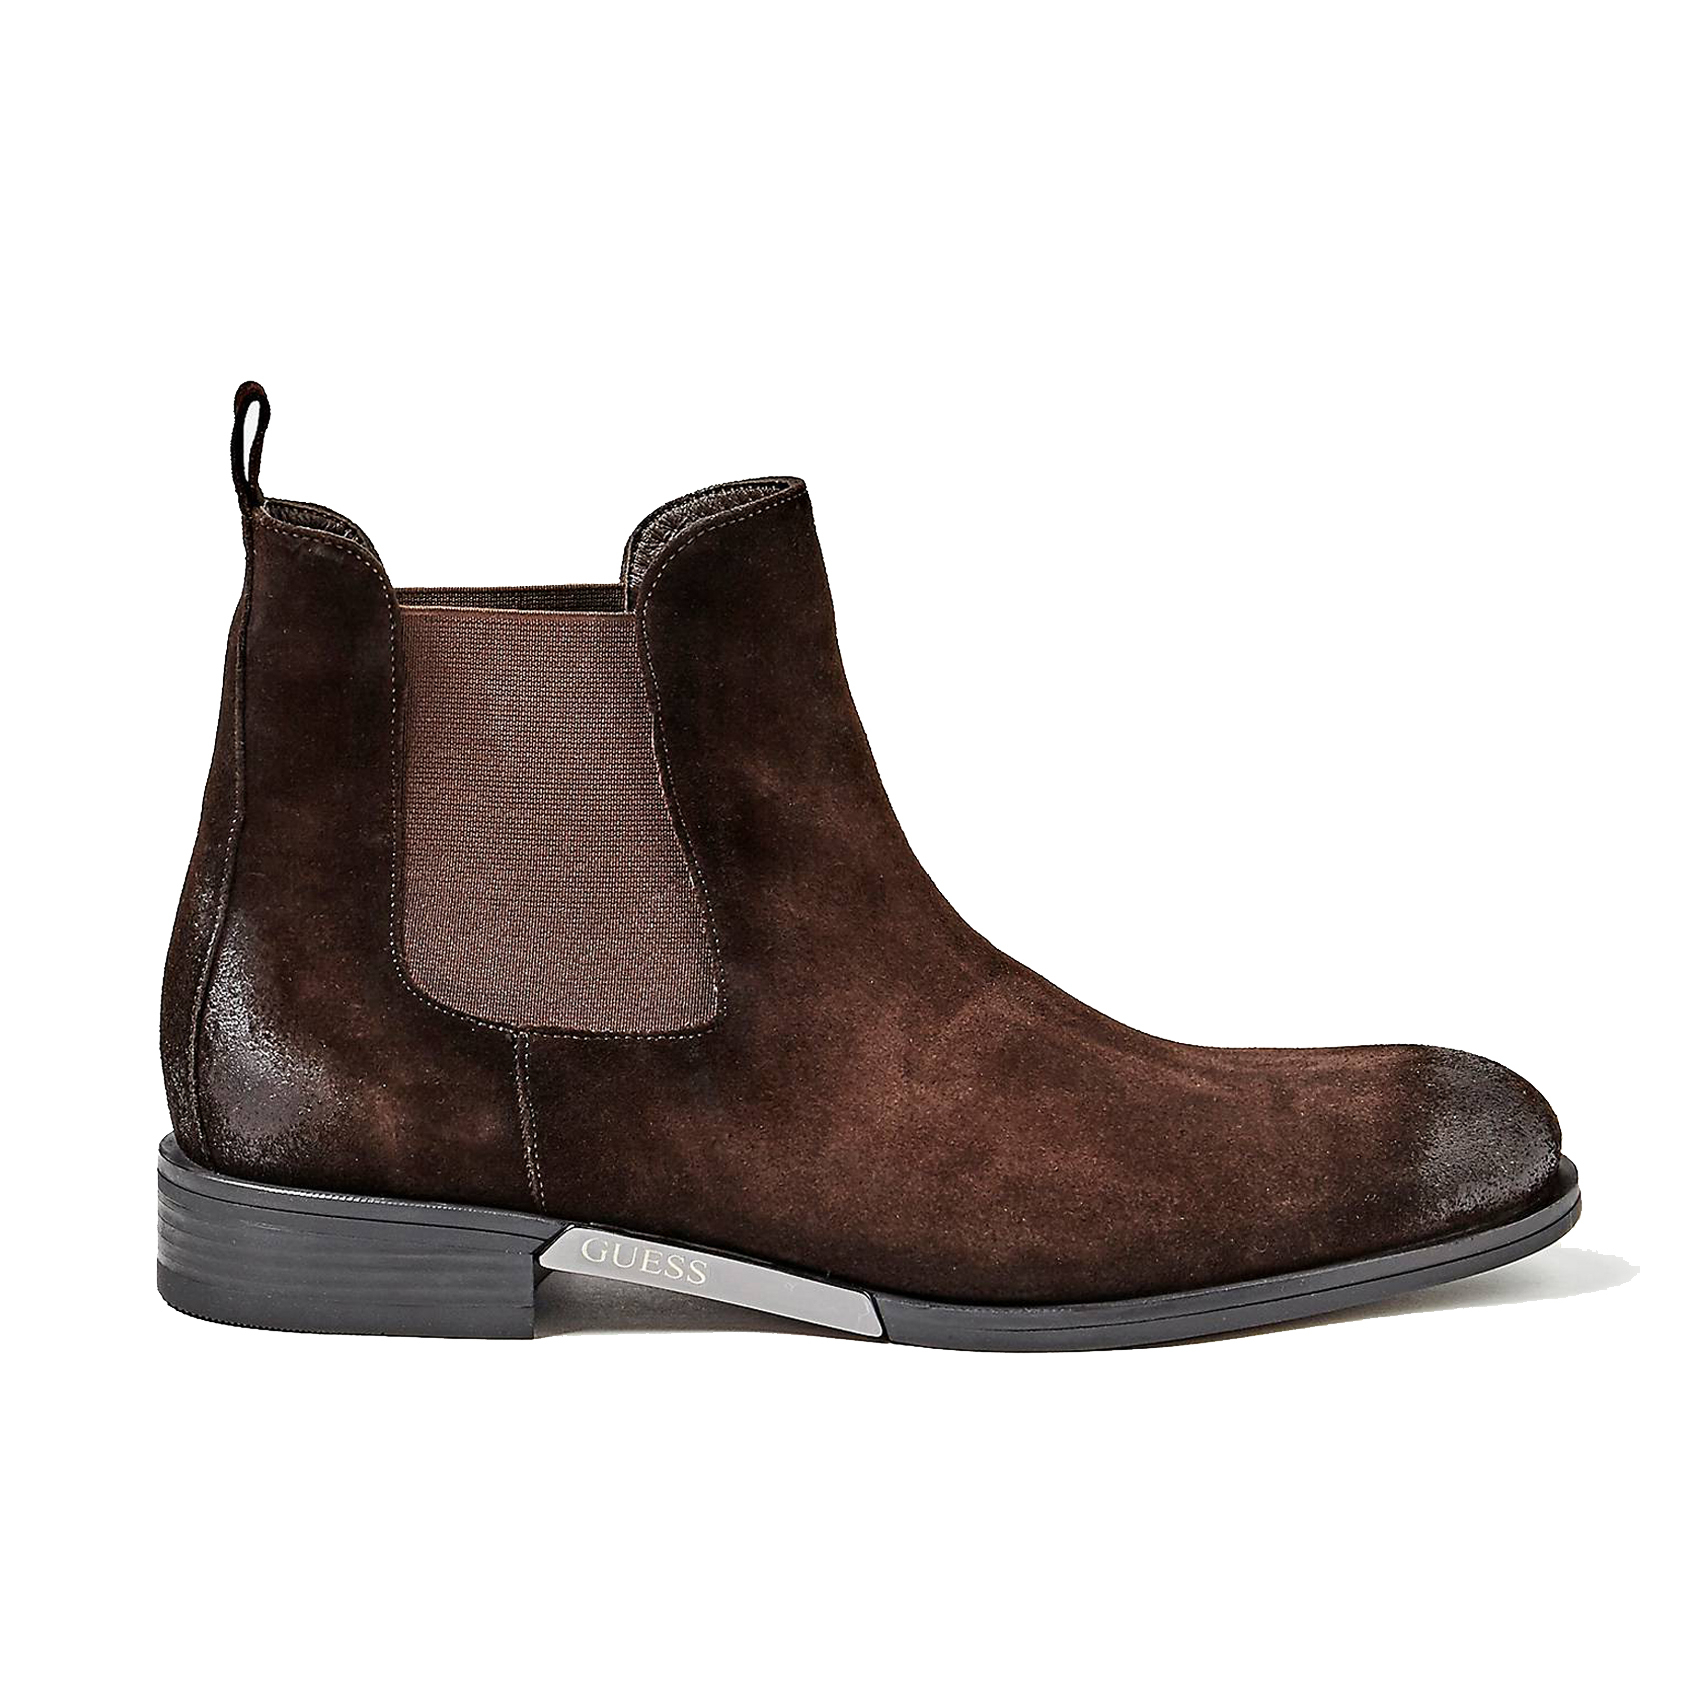 Stivaletto beatles marrone Guess